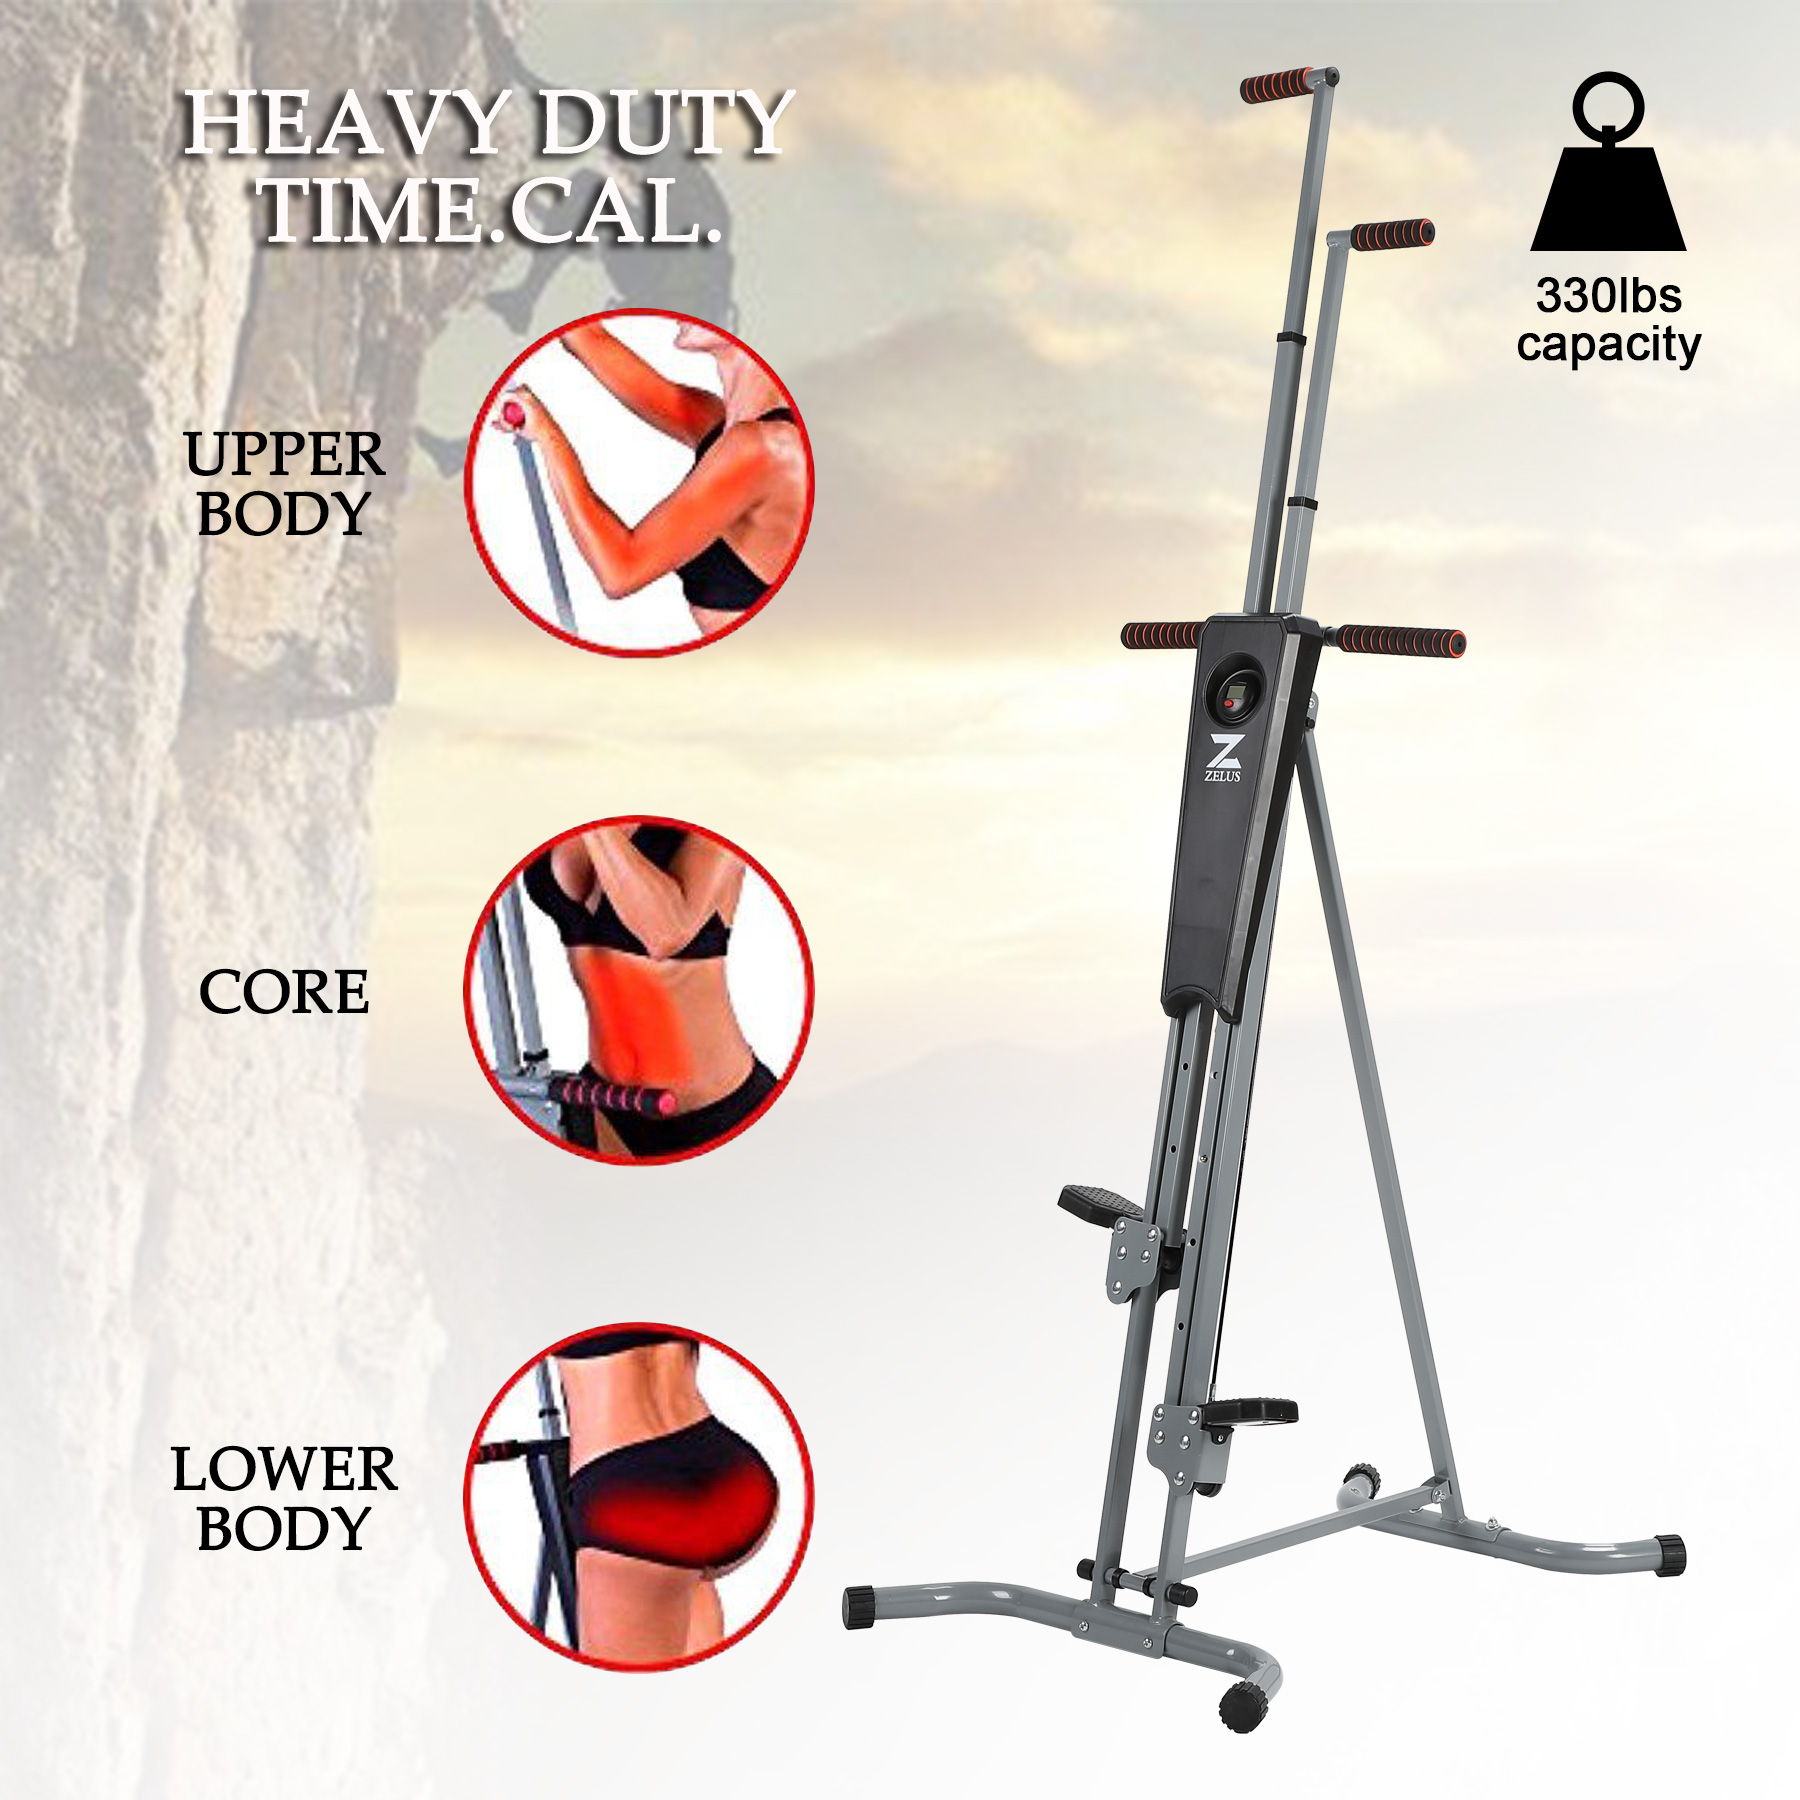 Vertical Climber Machine Fitness Climbing Equipment for Home Gym by